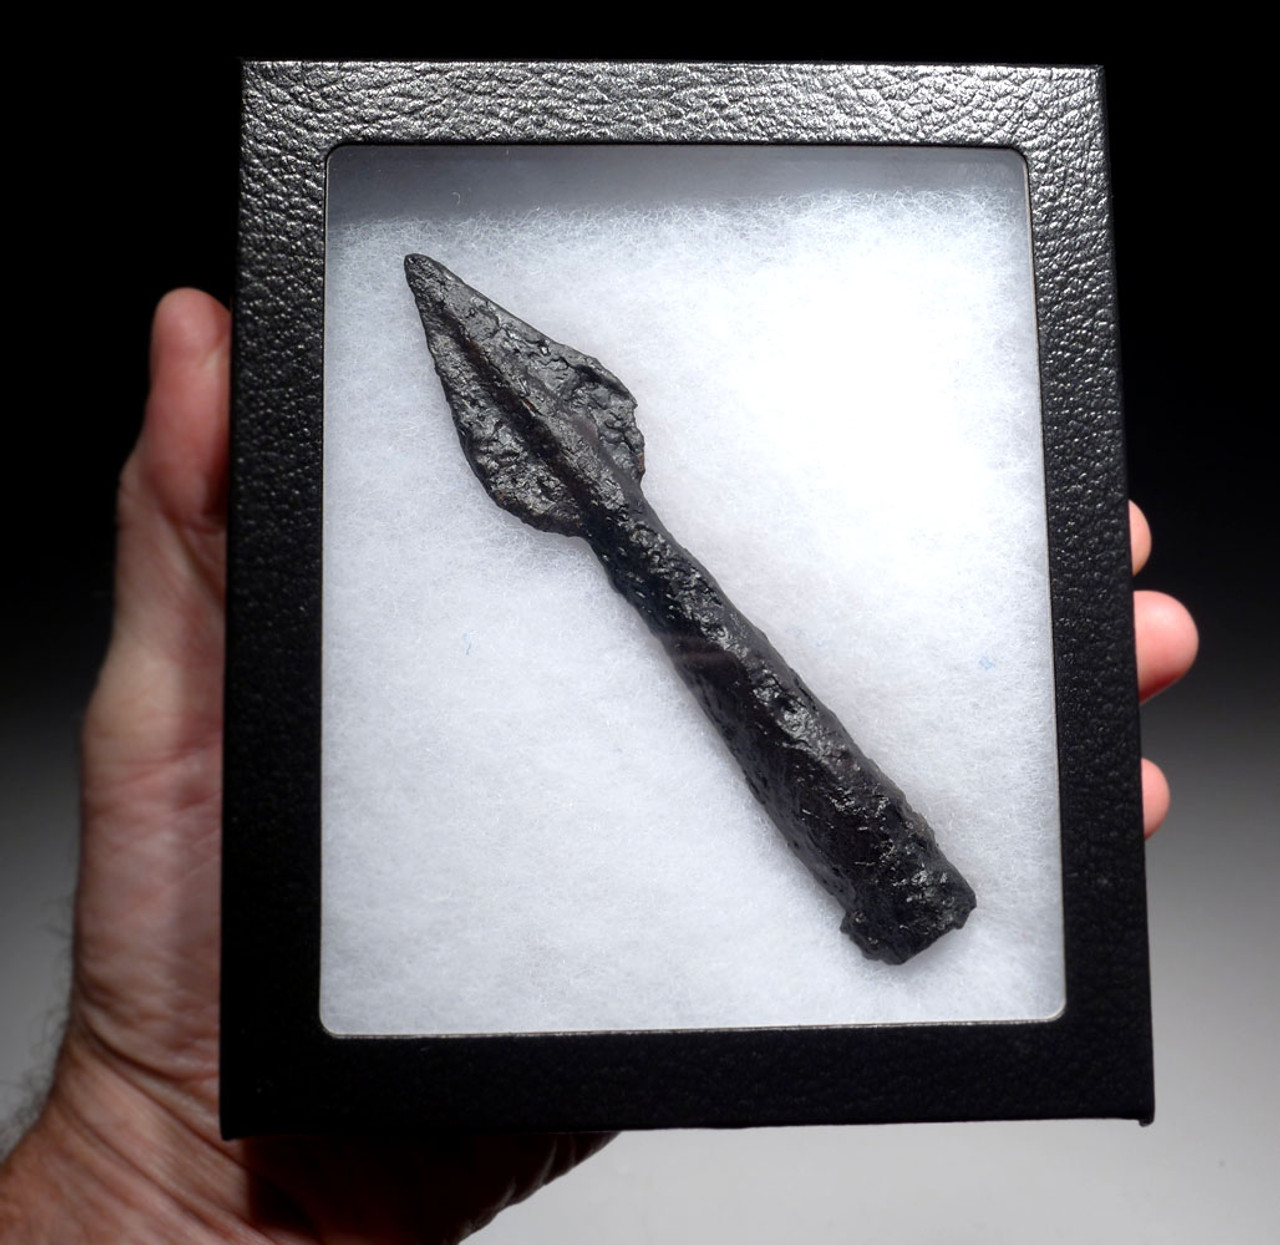 ANCIENT CELTIC IRON THROWING JAVELIN SPEARHEAD FROM THE BALKAN CELT TRIBES  *CEL019